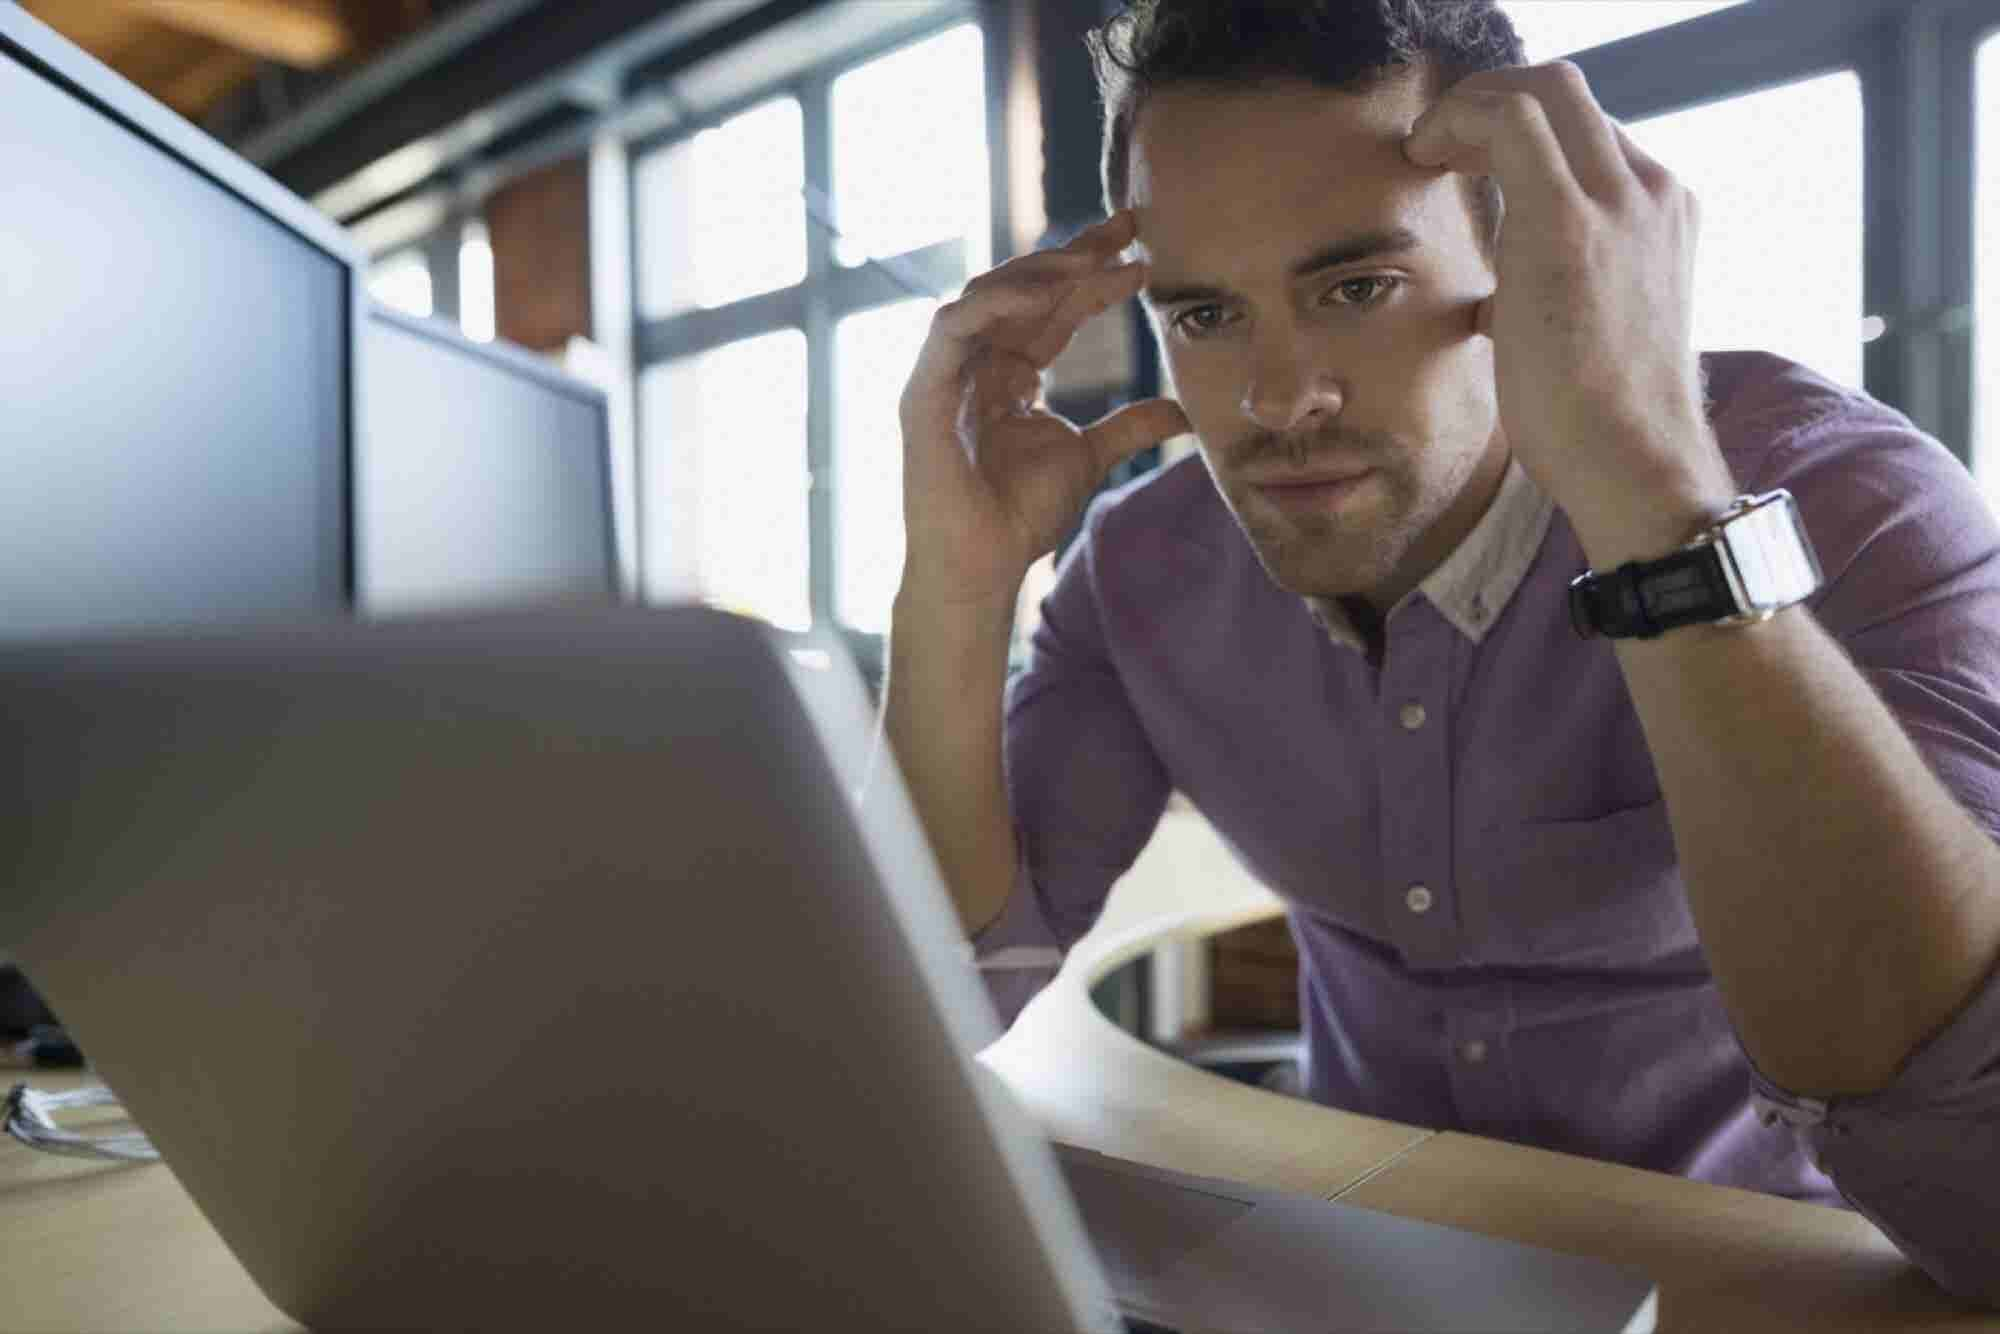 How to Treat Information Overload in 3 Simple Steps